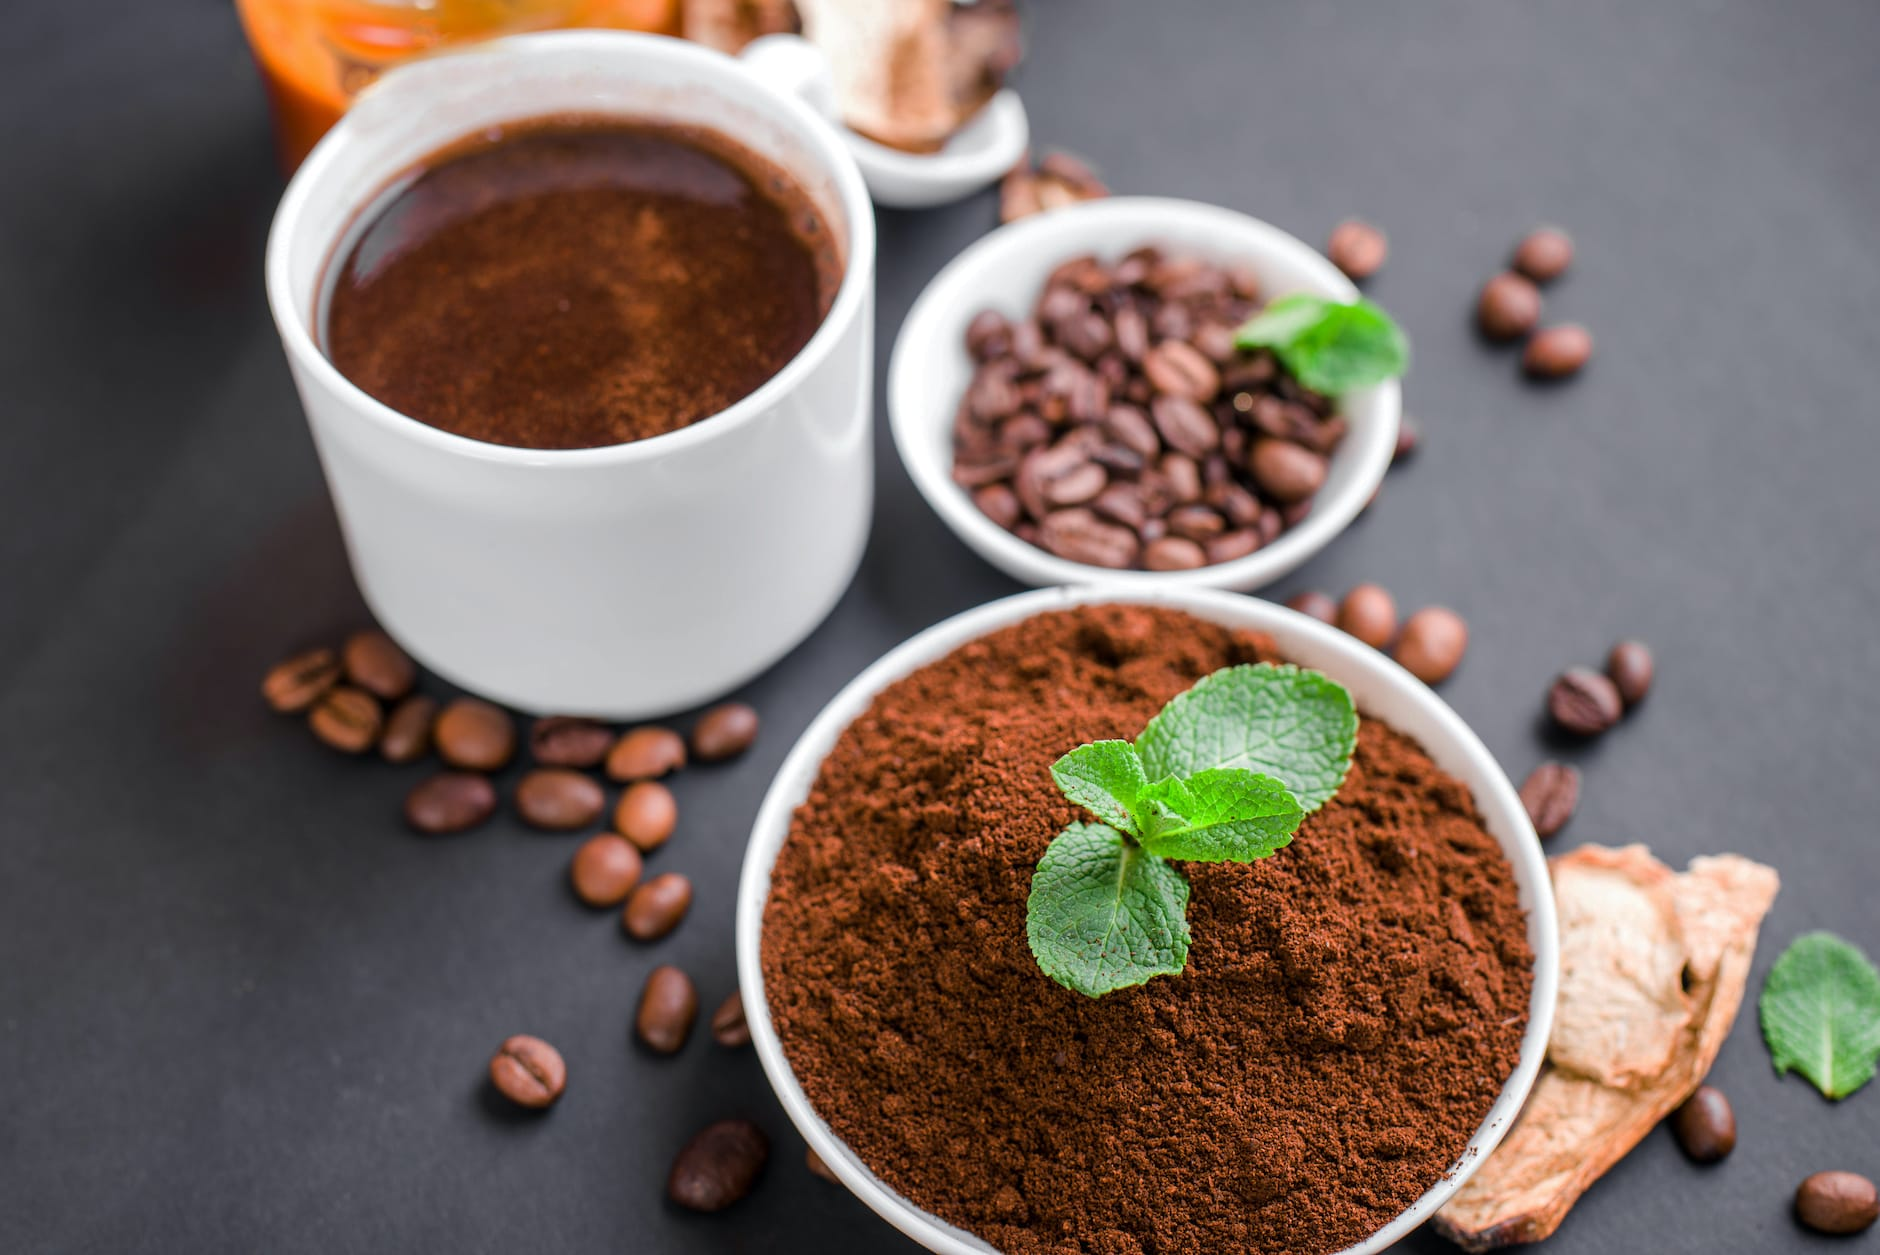 What The Heck Is Mushroom Coffee (And Should You Drink It)?image preview